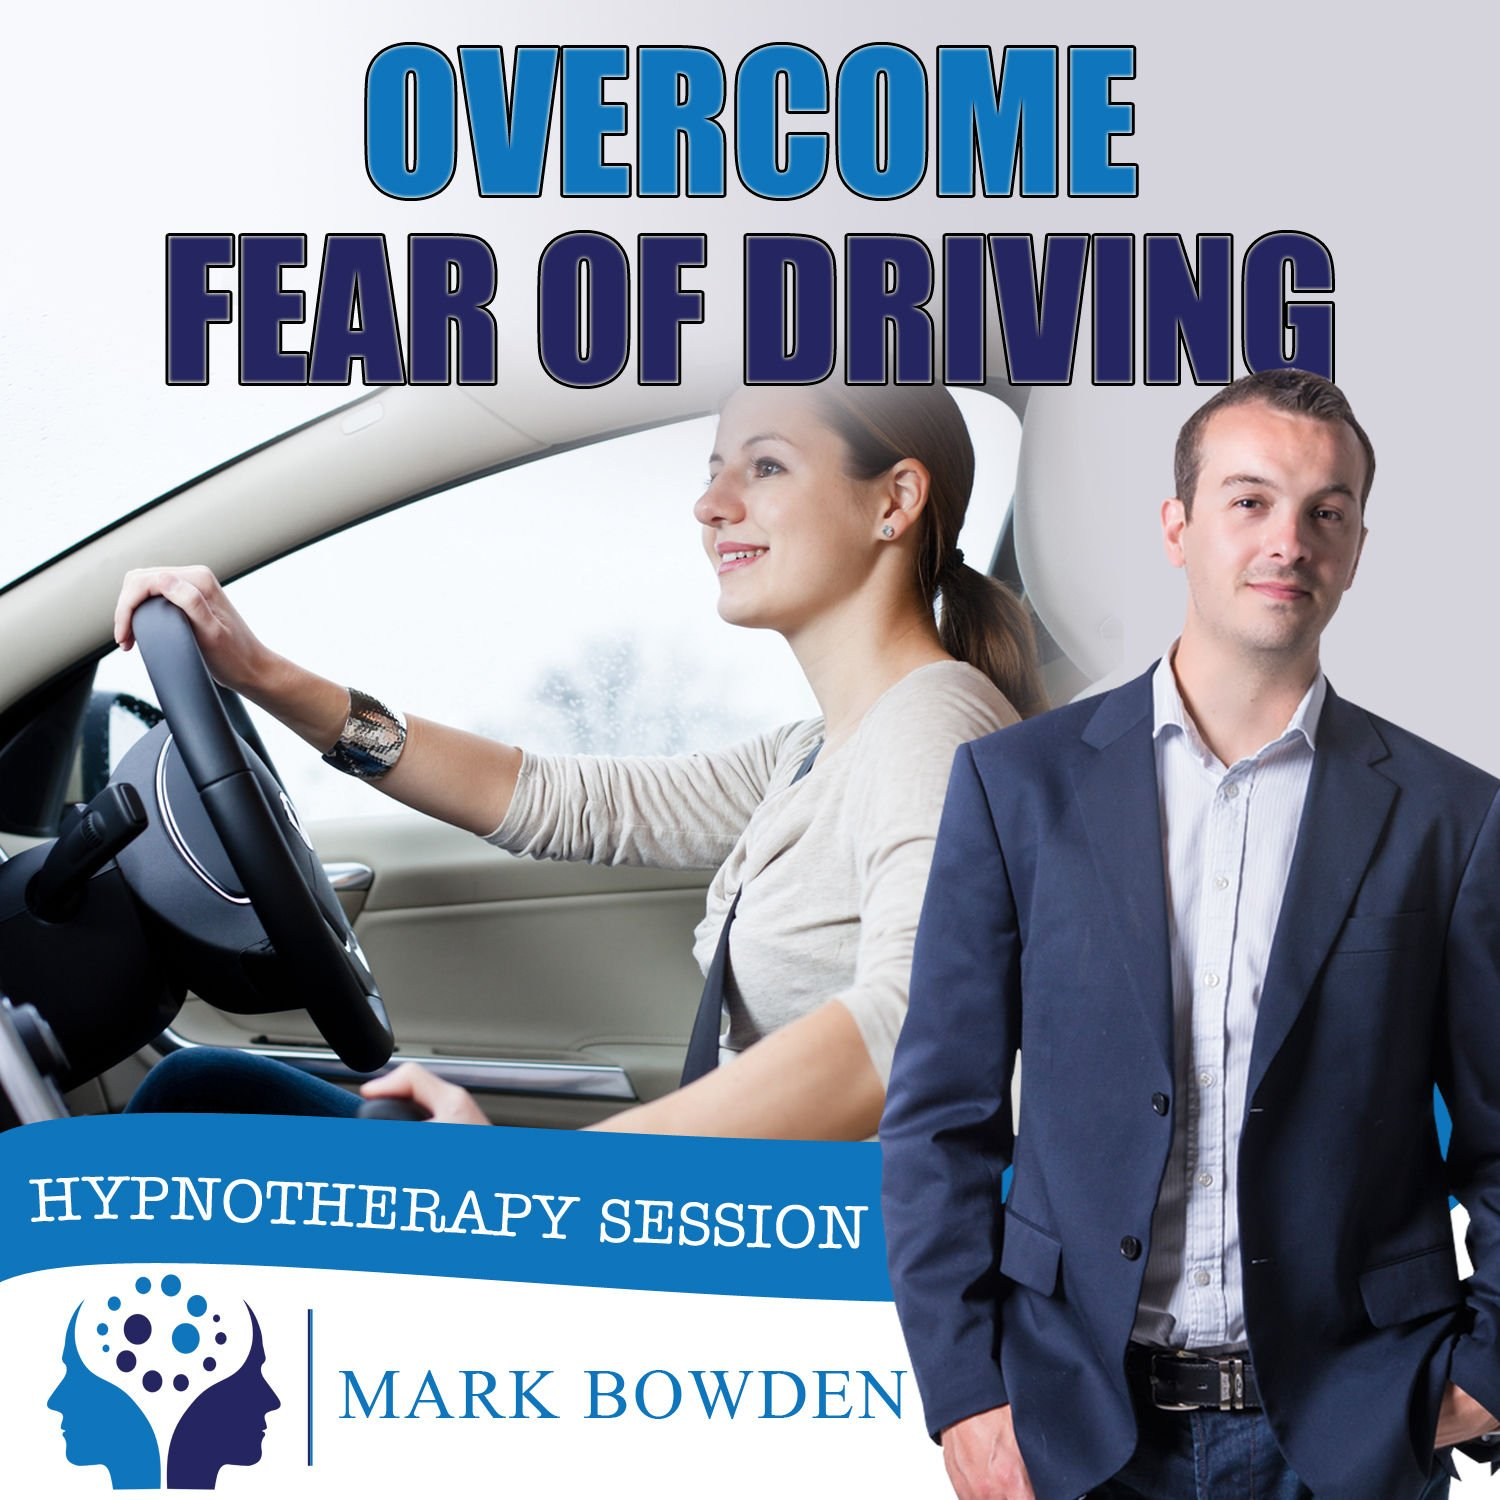 Overcome Fear of Driving Self Hypnosis CD - Hypnotherapy CD to Get the Freedom To Travel Any Types of Roads - Feel at Ease Behind the Wheel and Be Rid of Your Phobia